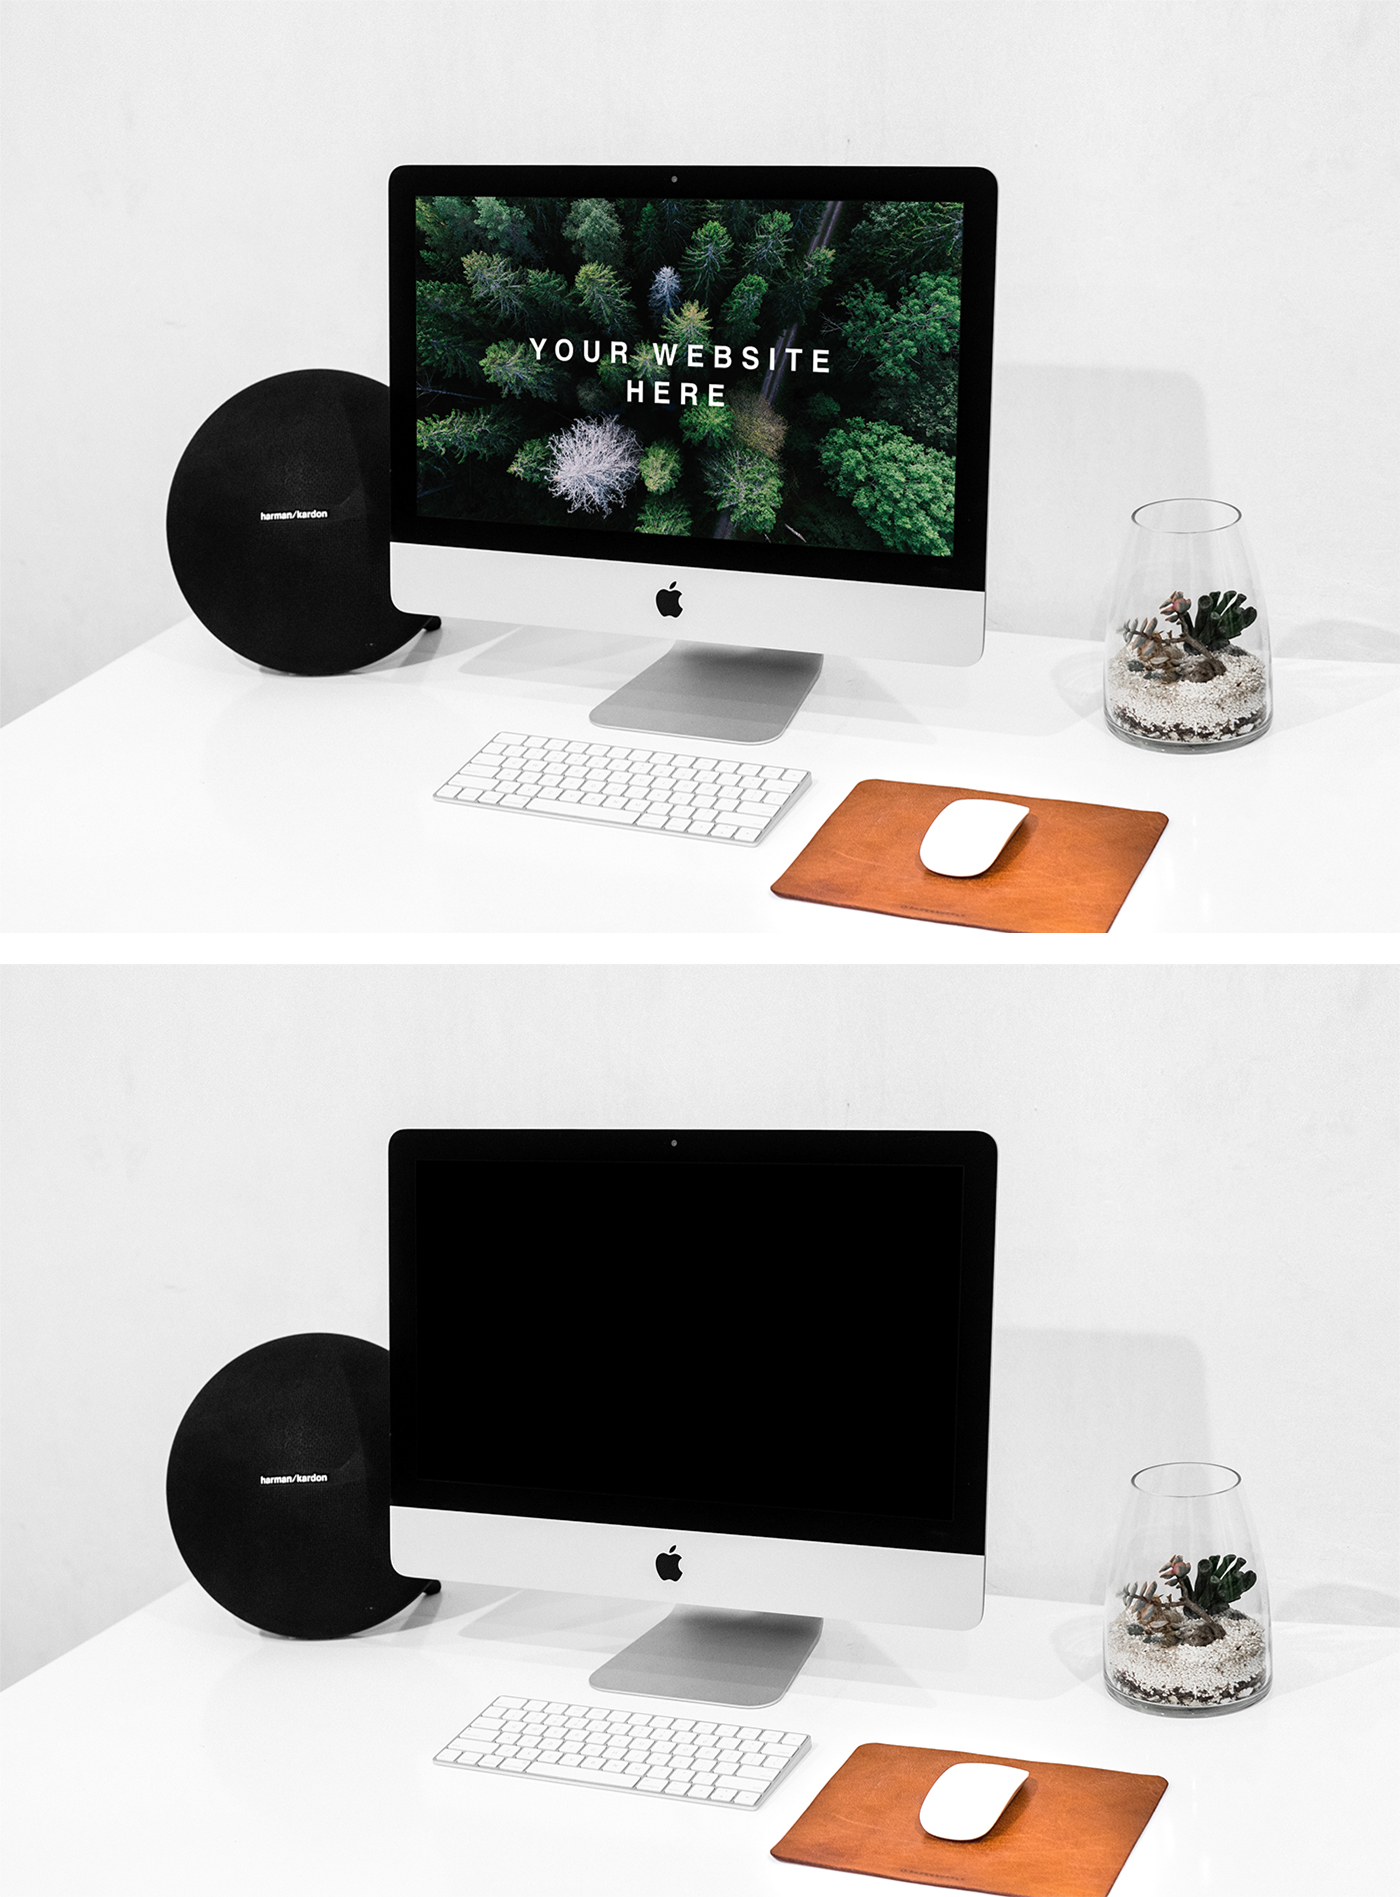 Free iMac Mockup stock photo collection